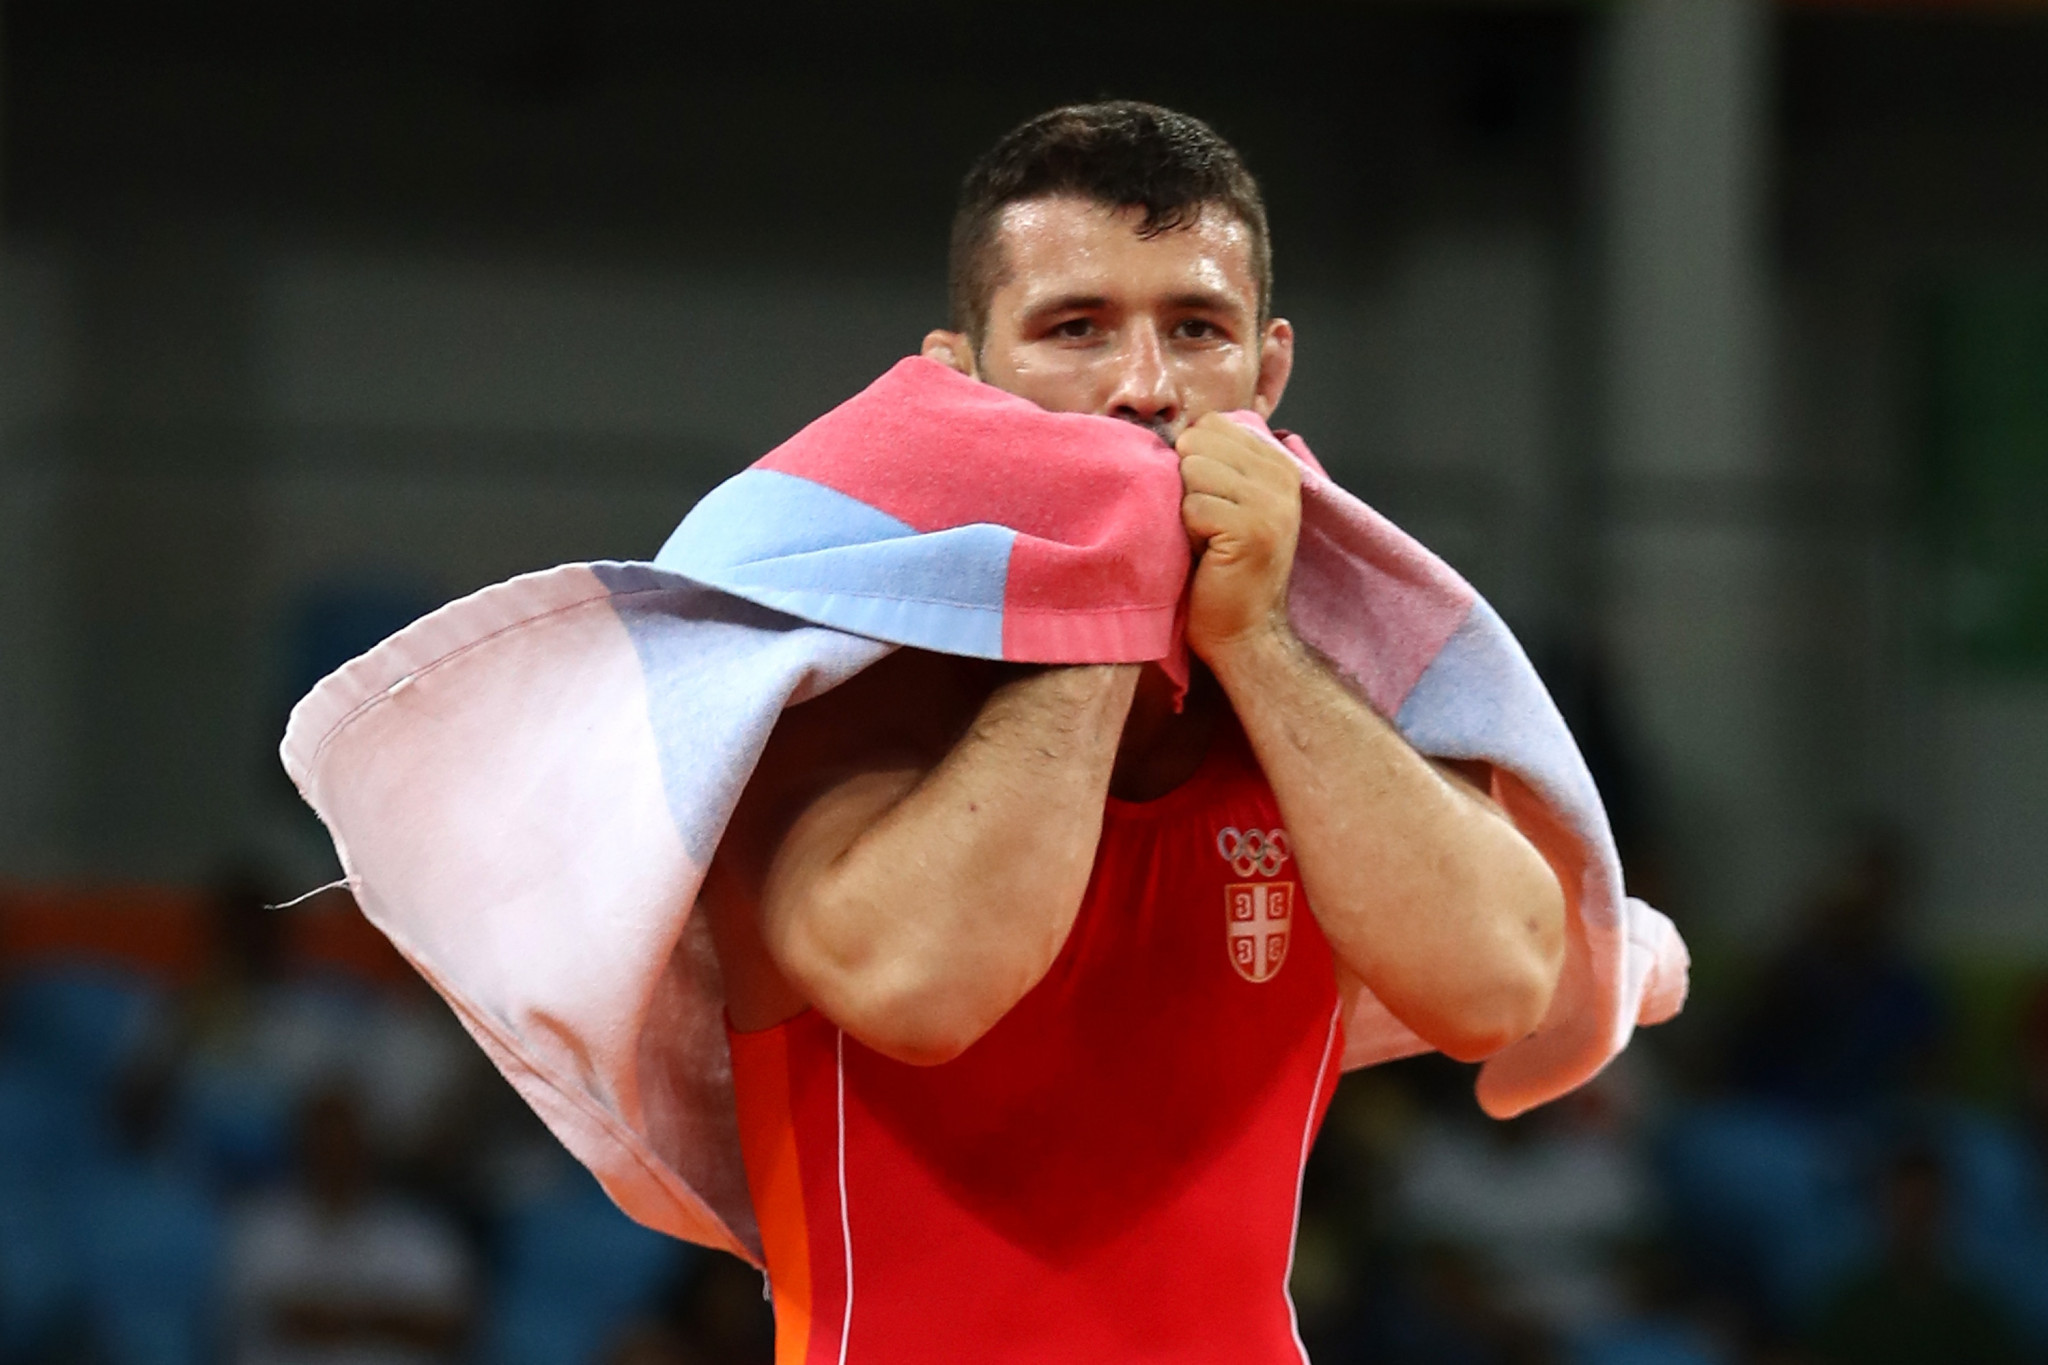 Olympic champion Štefanek retires following defeat at UWW Individual World Cup